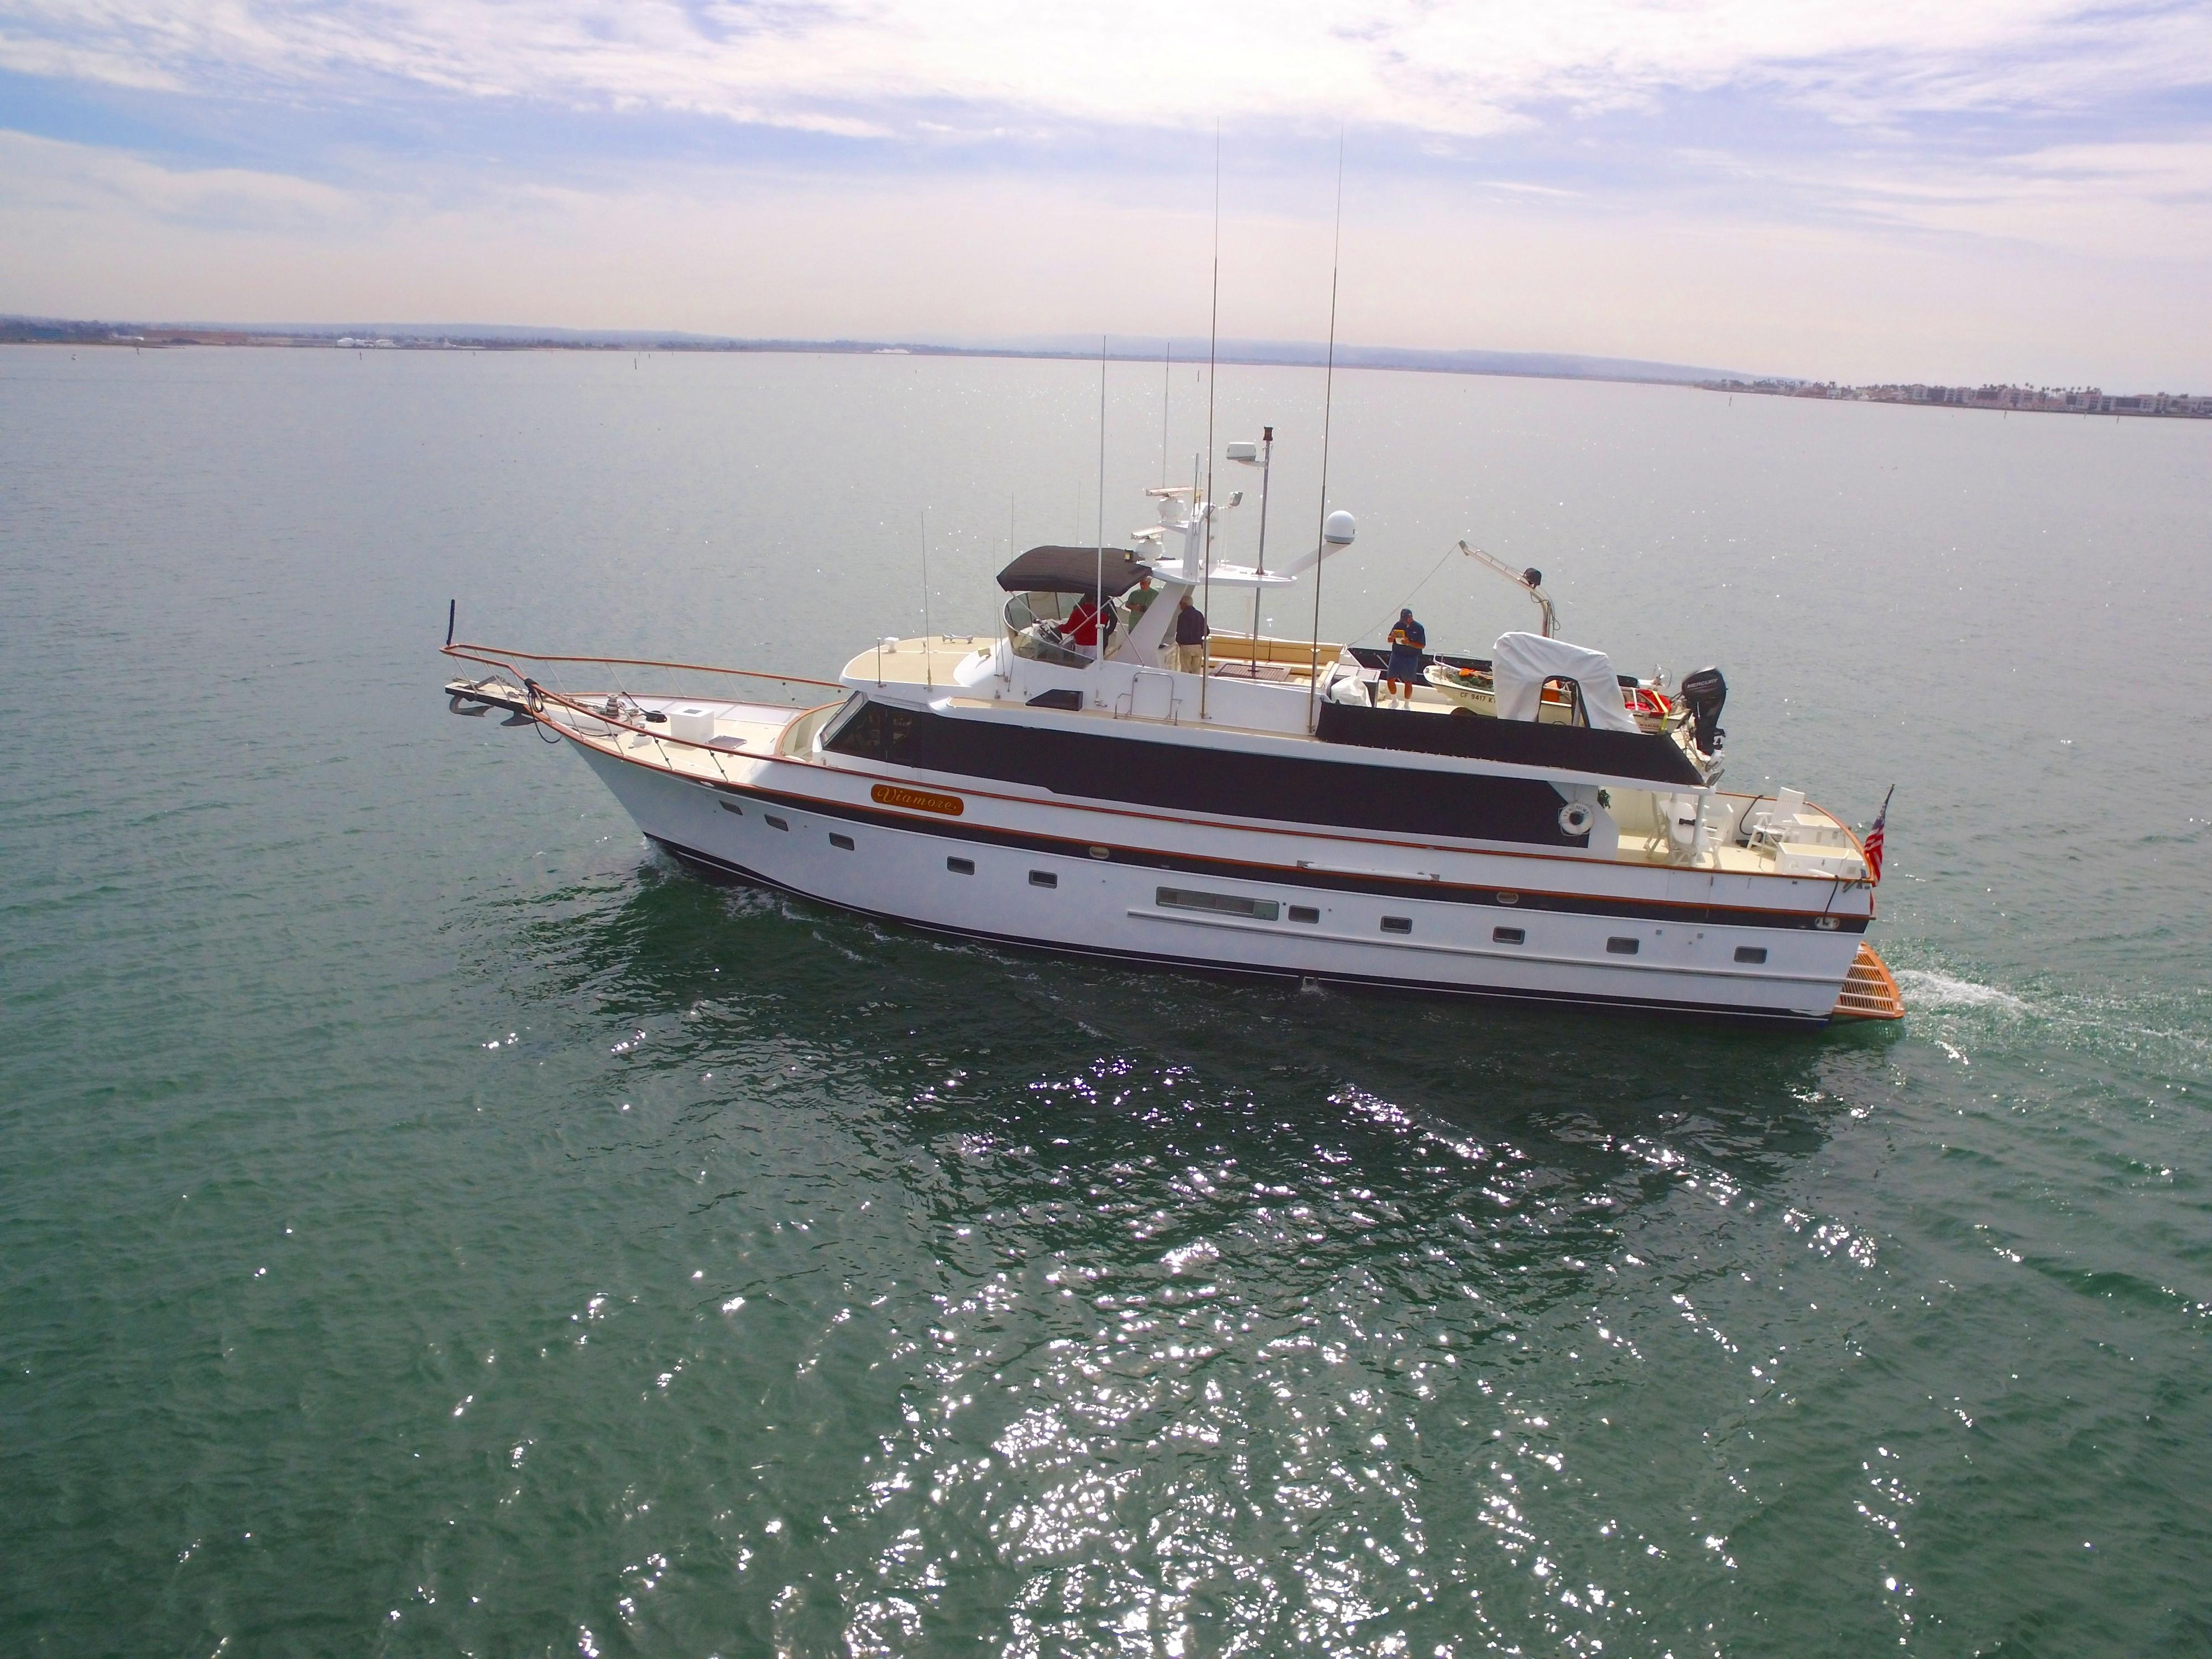 Used DeFever Cruisers for Sale - MLS Search